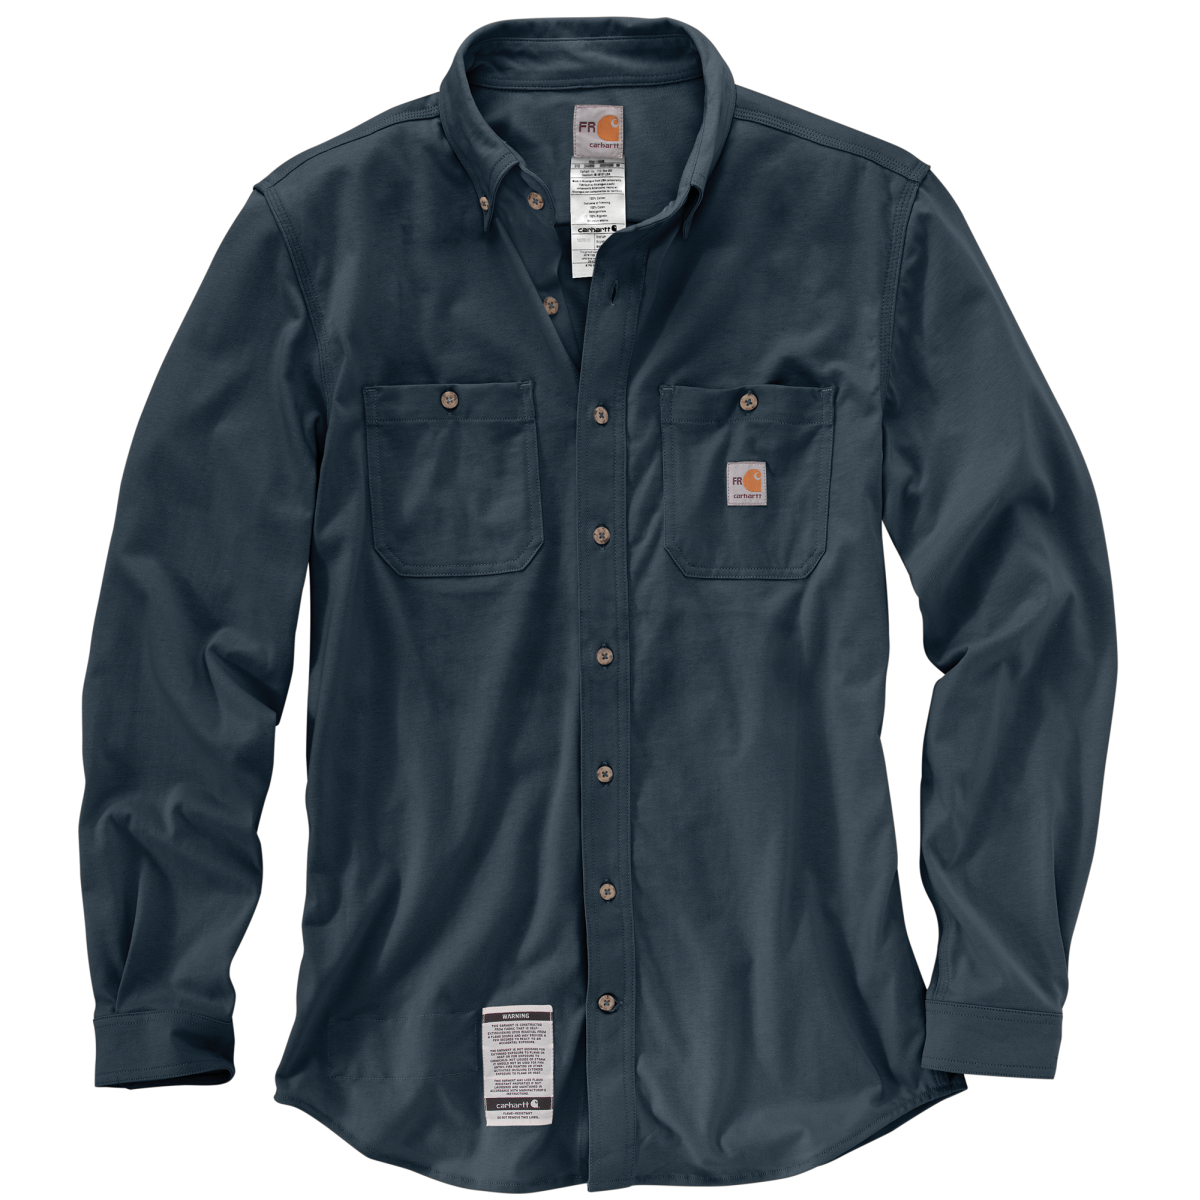 Men's Flame-Resistant Force Cotton Hybrid Shirt-Carhartt